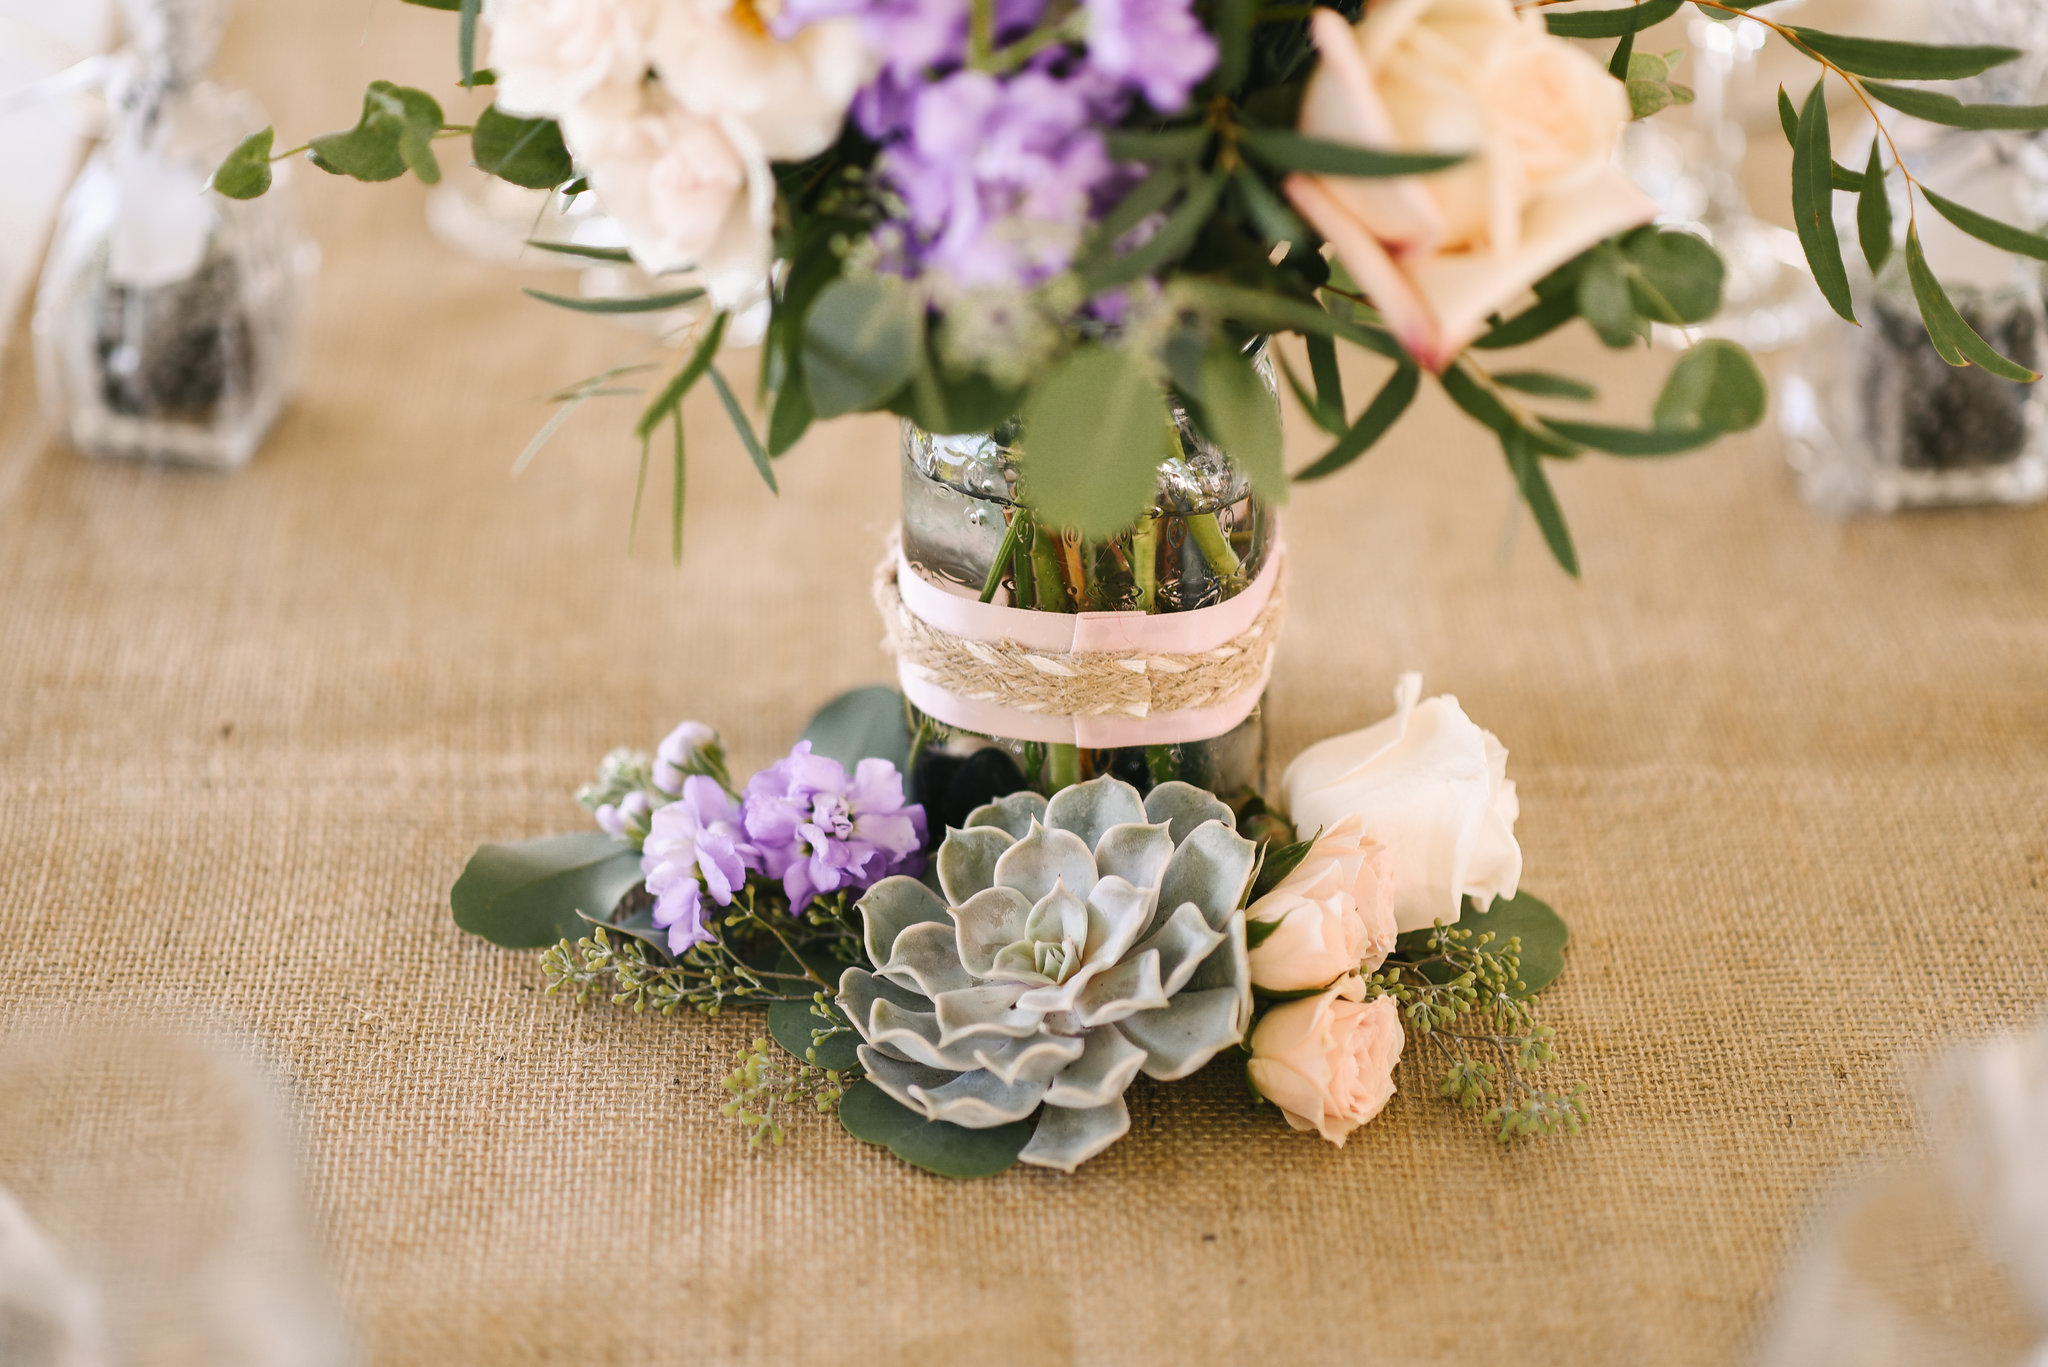 Maryland, Eastern Shore, Baltimore Wedding Photographer, Romantic, Boho, Backyard Wedding, Nature, Centerpieces of White and Purple Flowers and Succulents, Michael Designs Florist